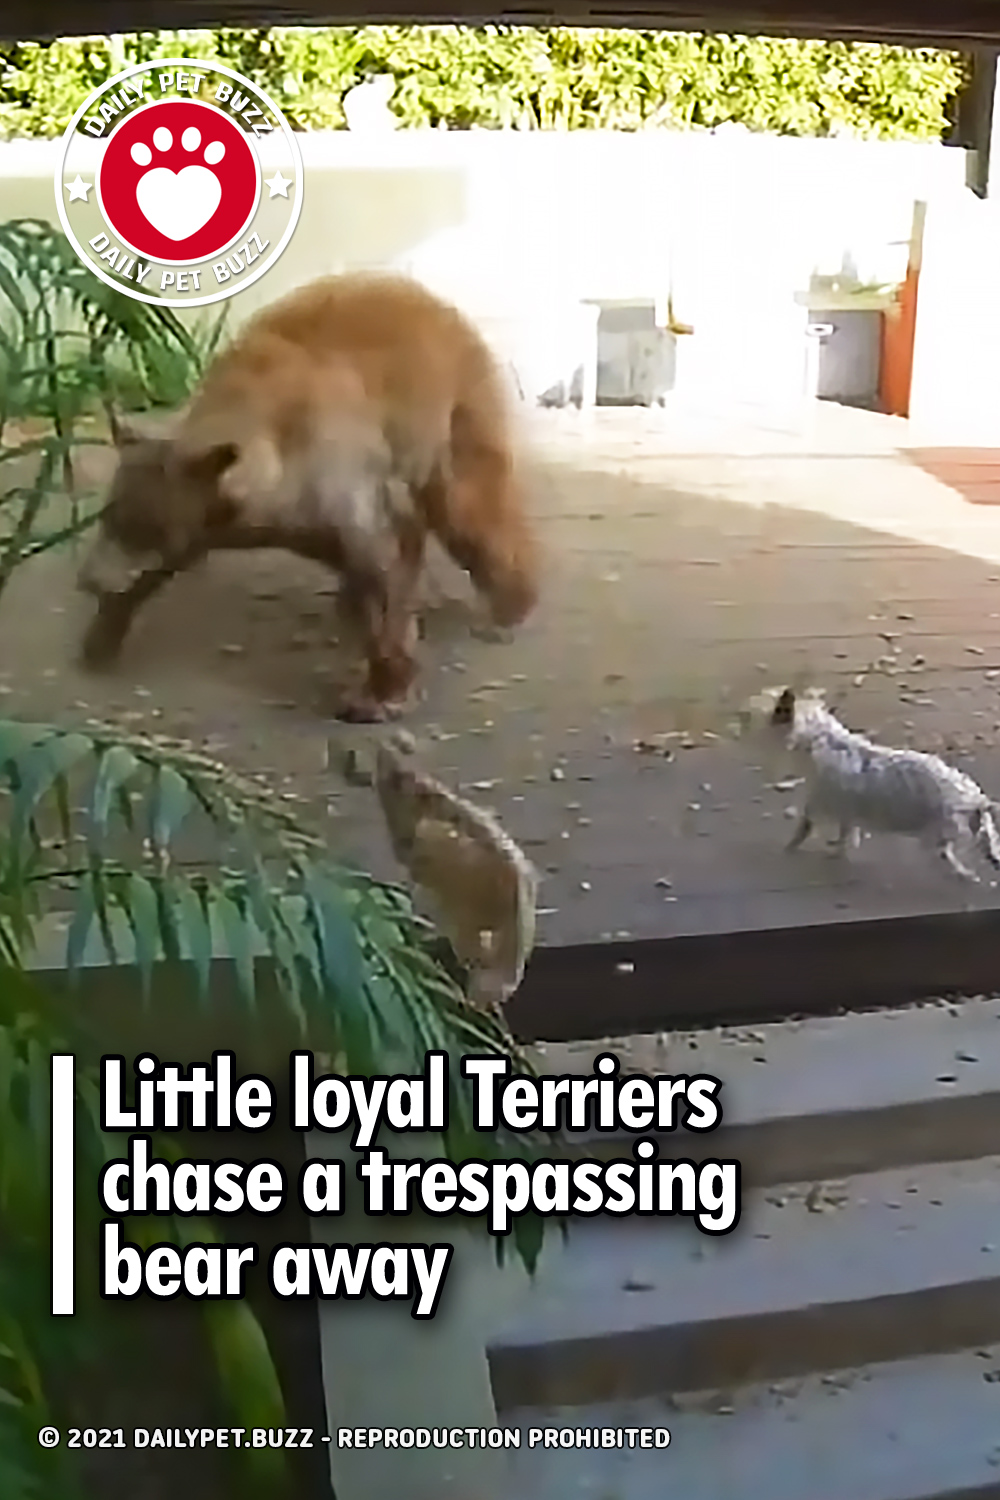 Little loyal Terriers chase a trespassing bear away